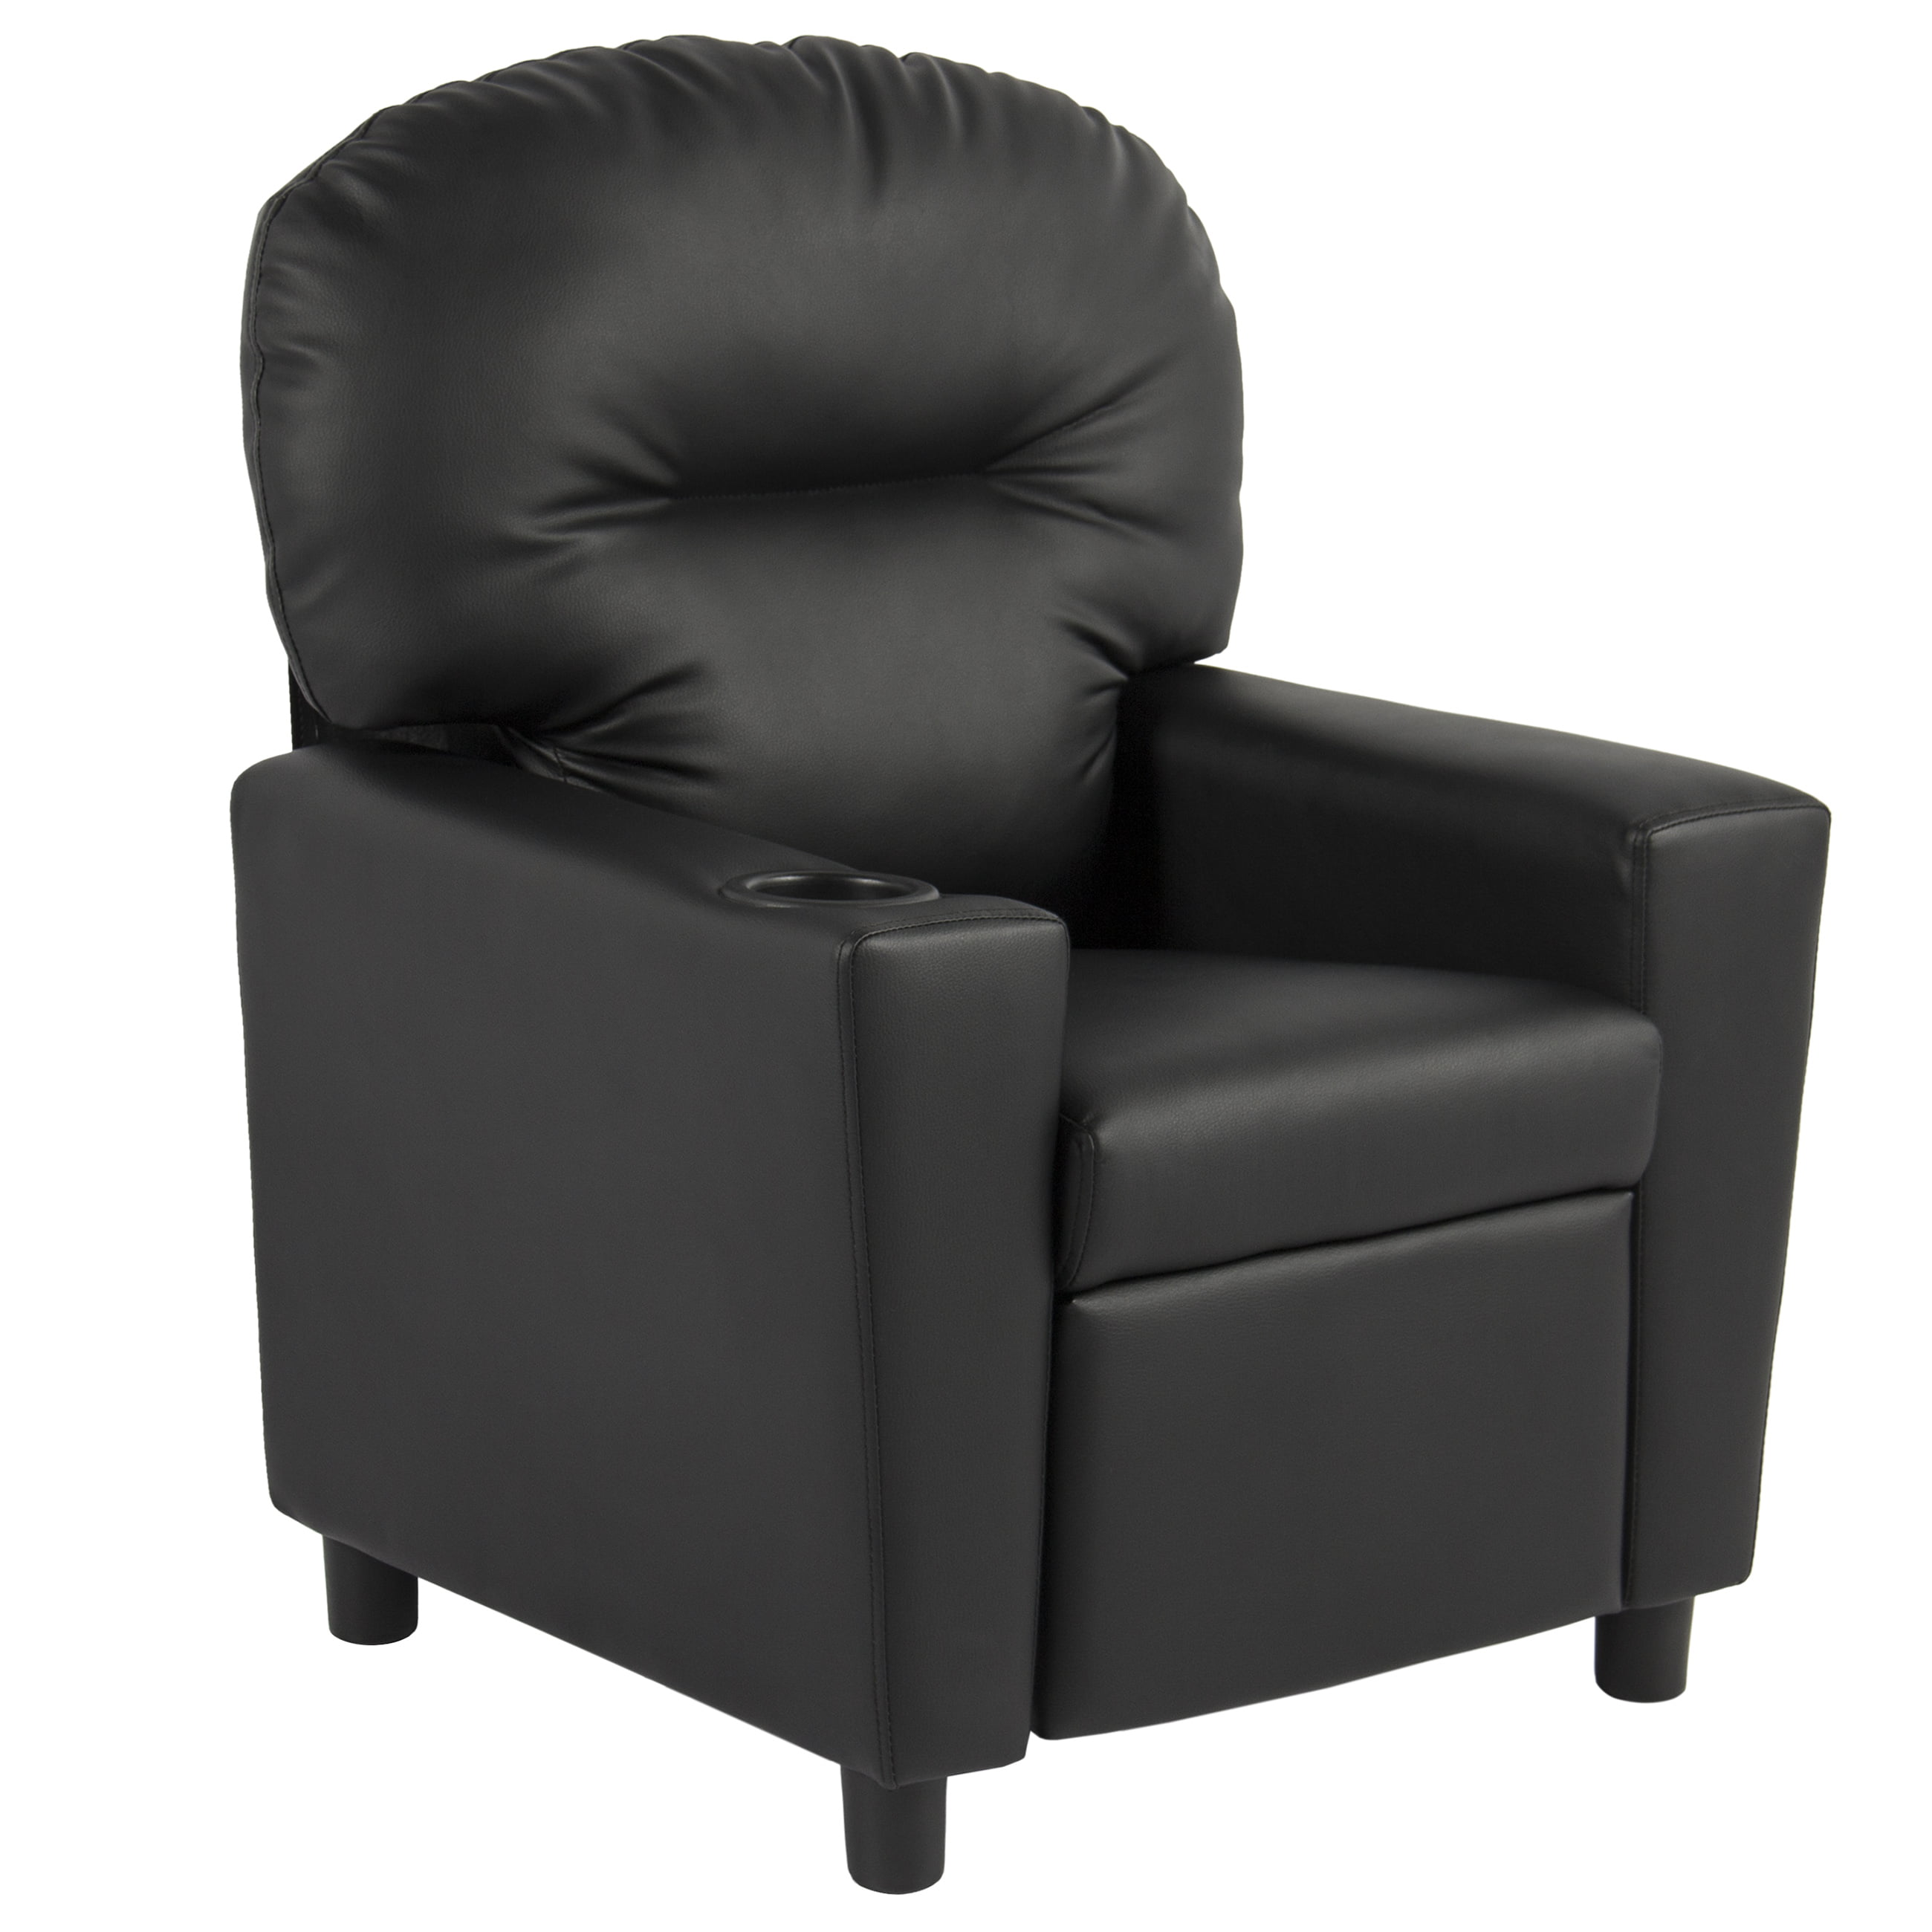 Best Choice Products Black Leather Kids Recliner Chair With Cup Holder    Walmart.com